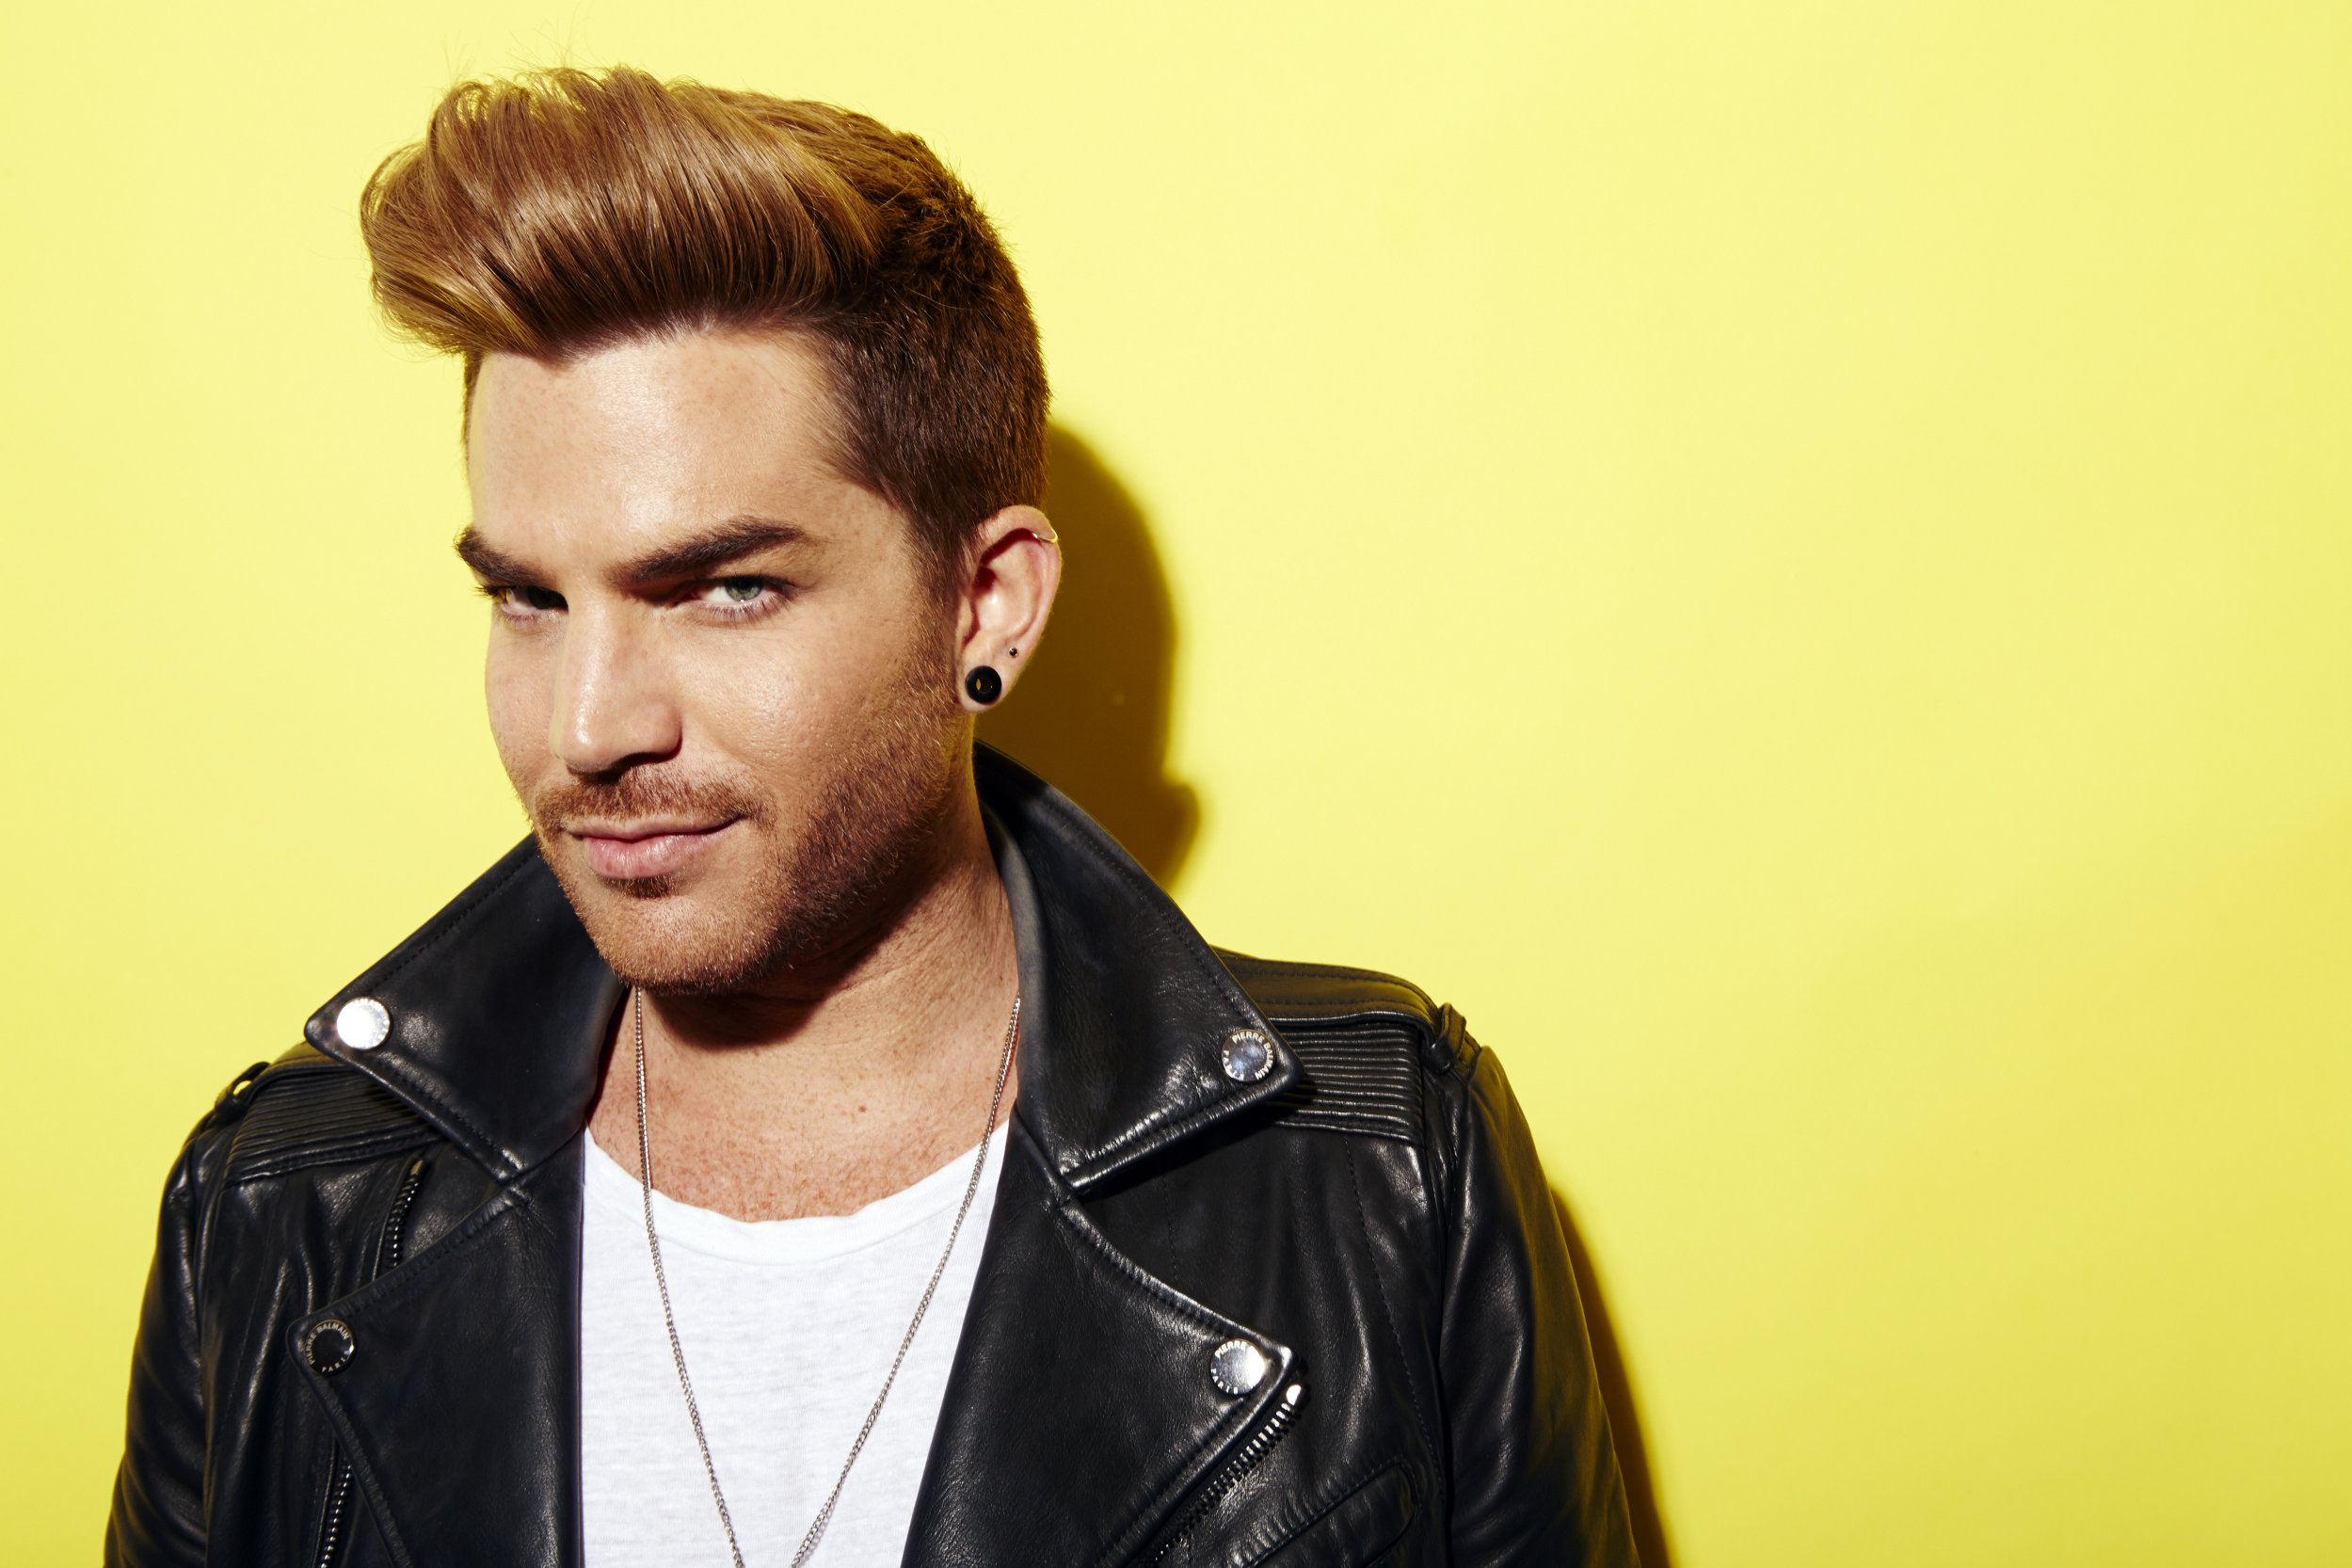 from Trenton adam lambert being gay